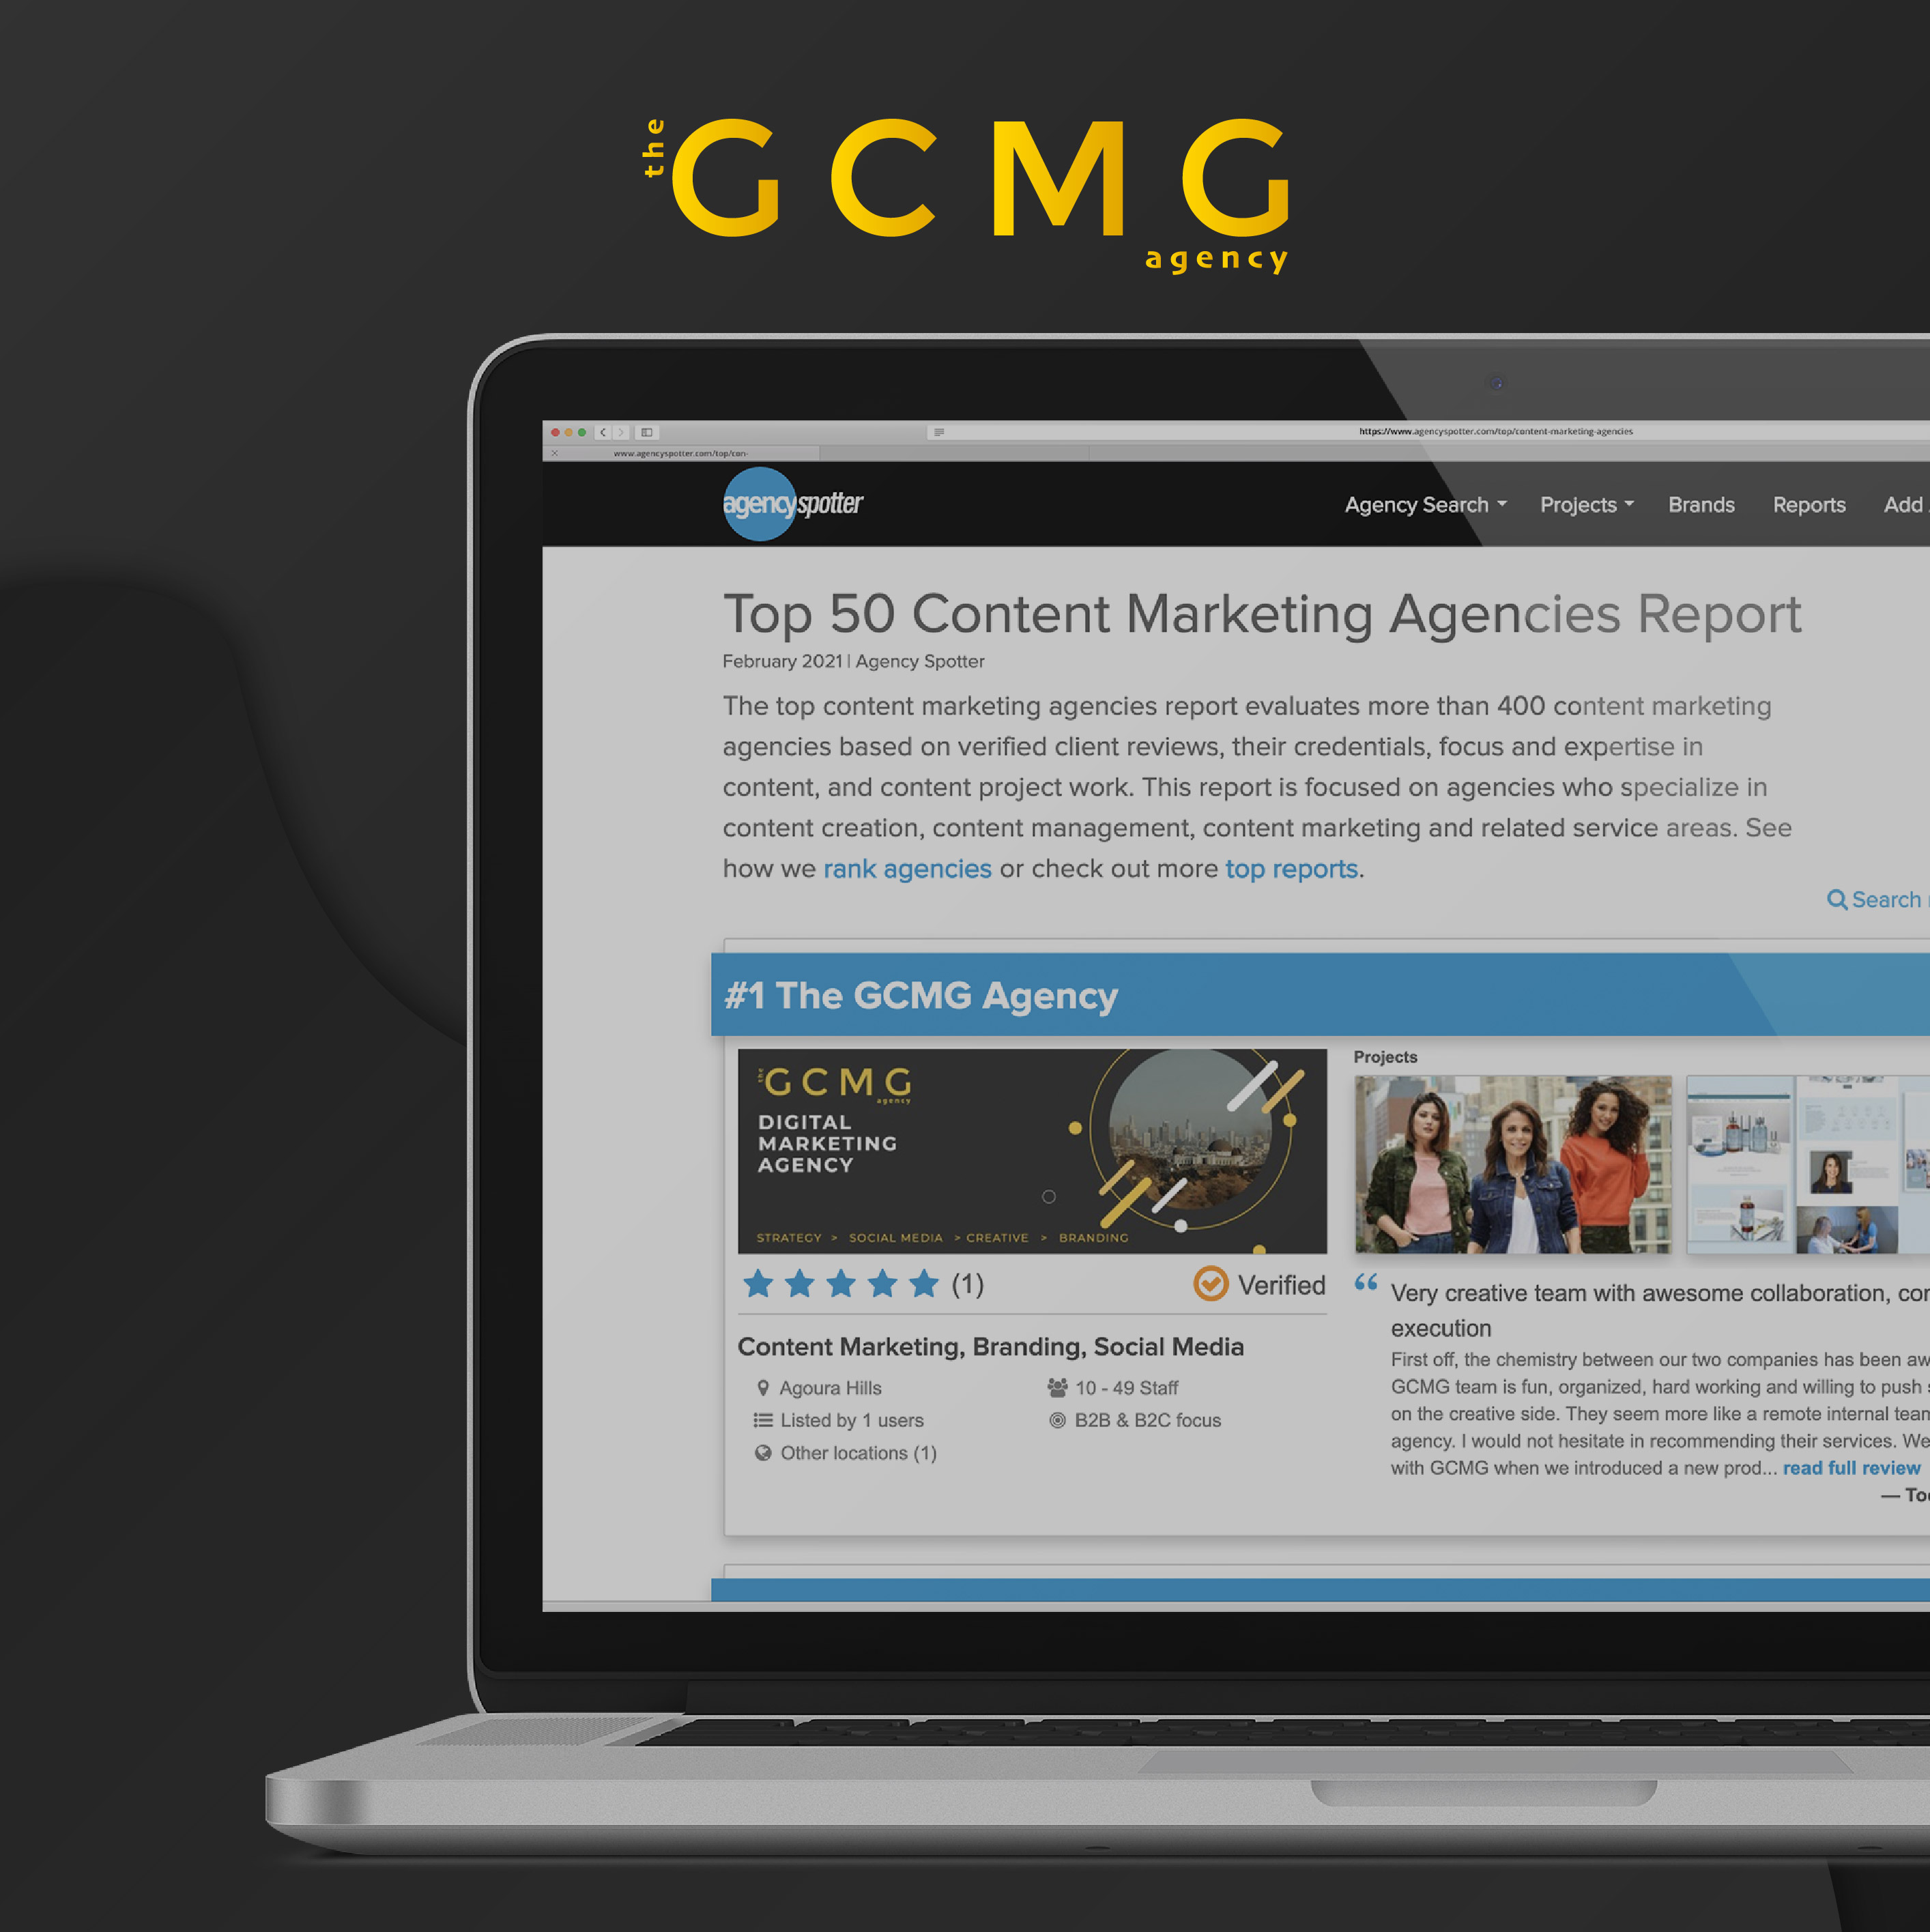 THE GCMG AGENCY NAMED AS NO. 1 CONTENT MARKETING AGENCY